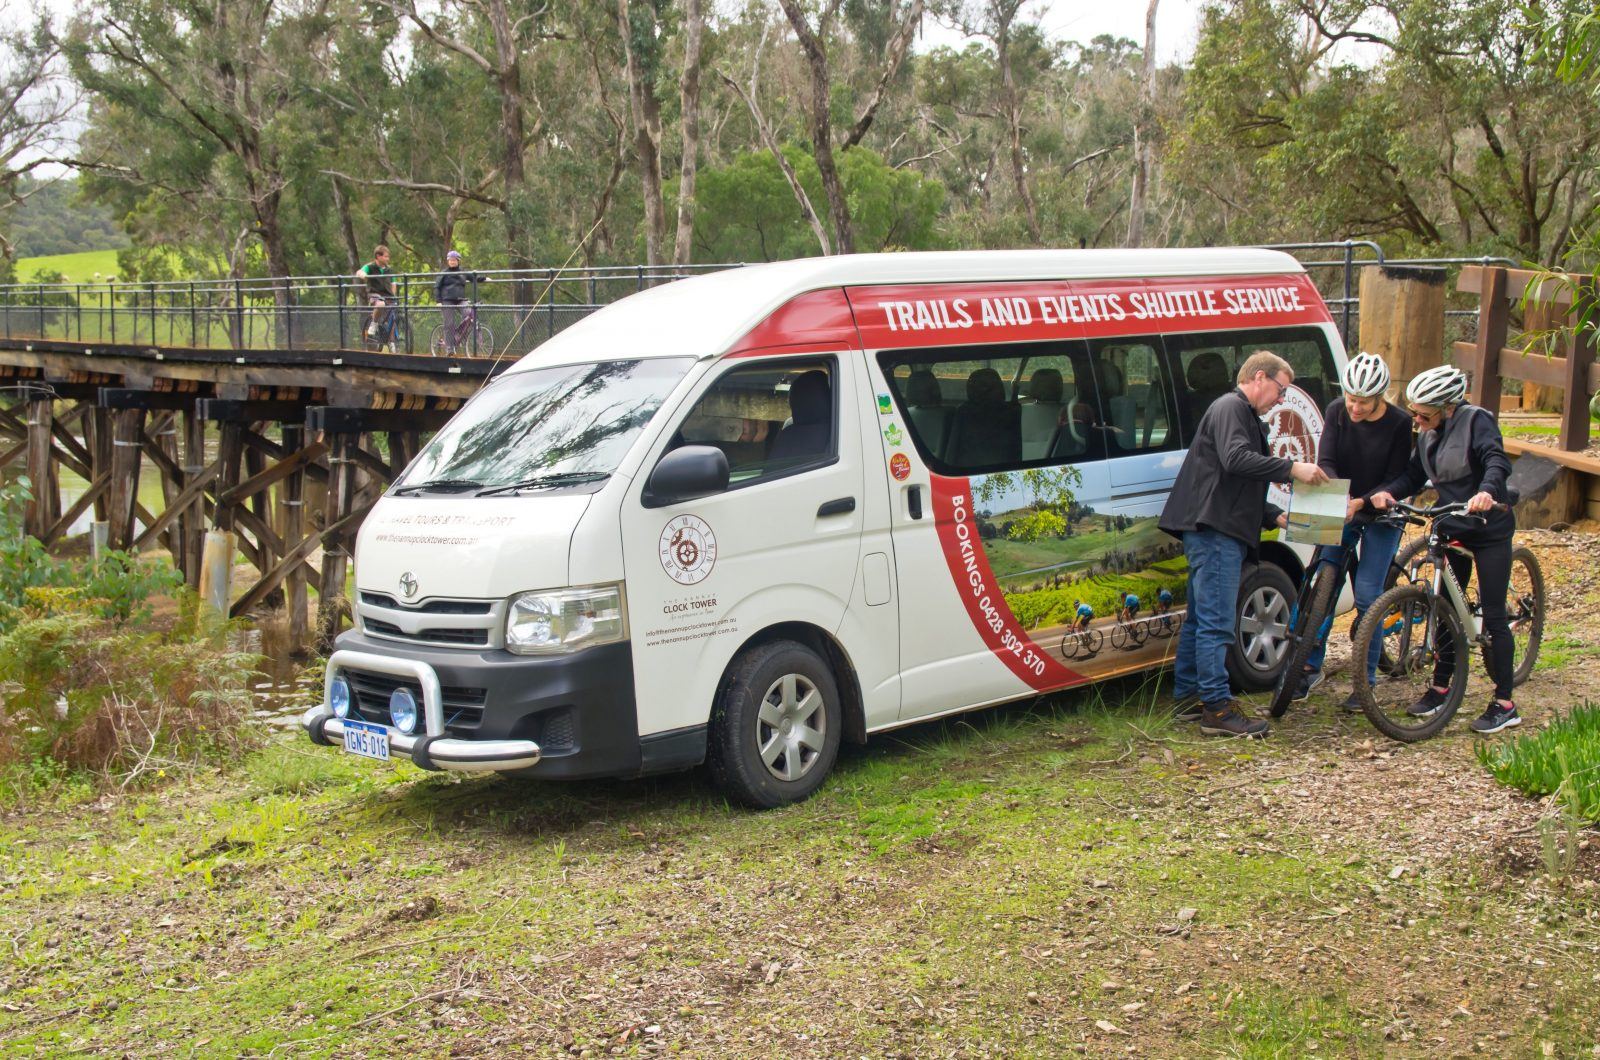 Time Travel Tours and Transport, Nannup, Western Australia